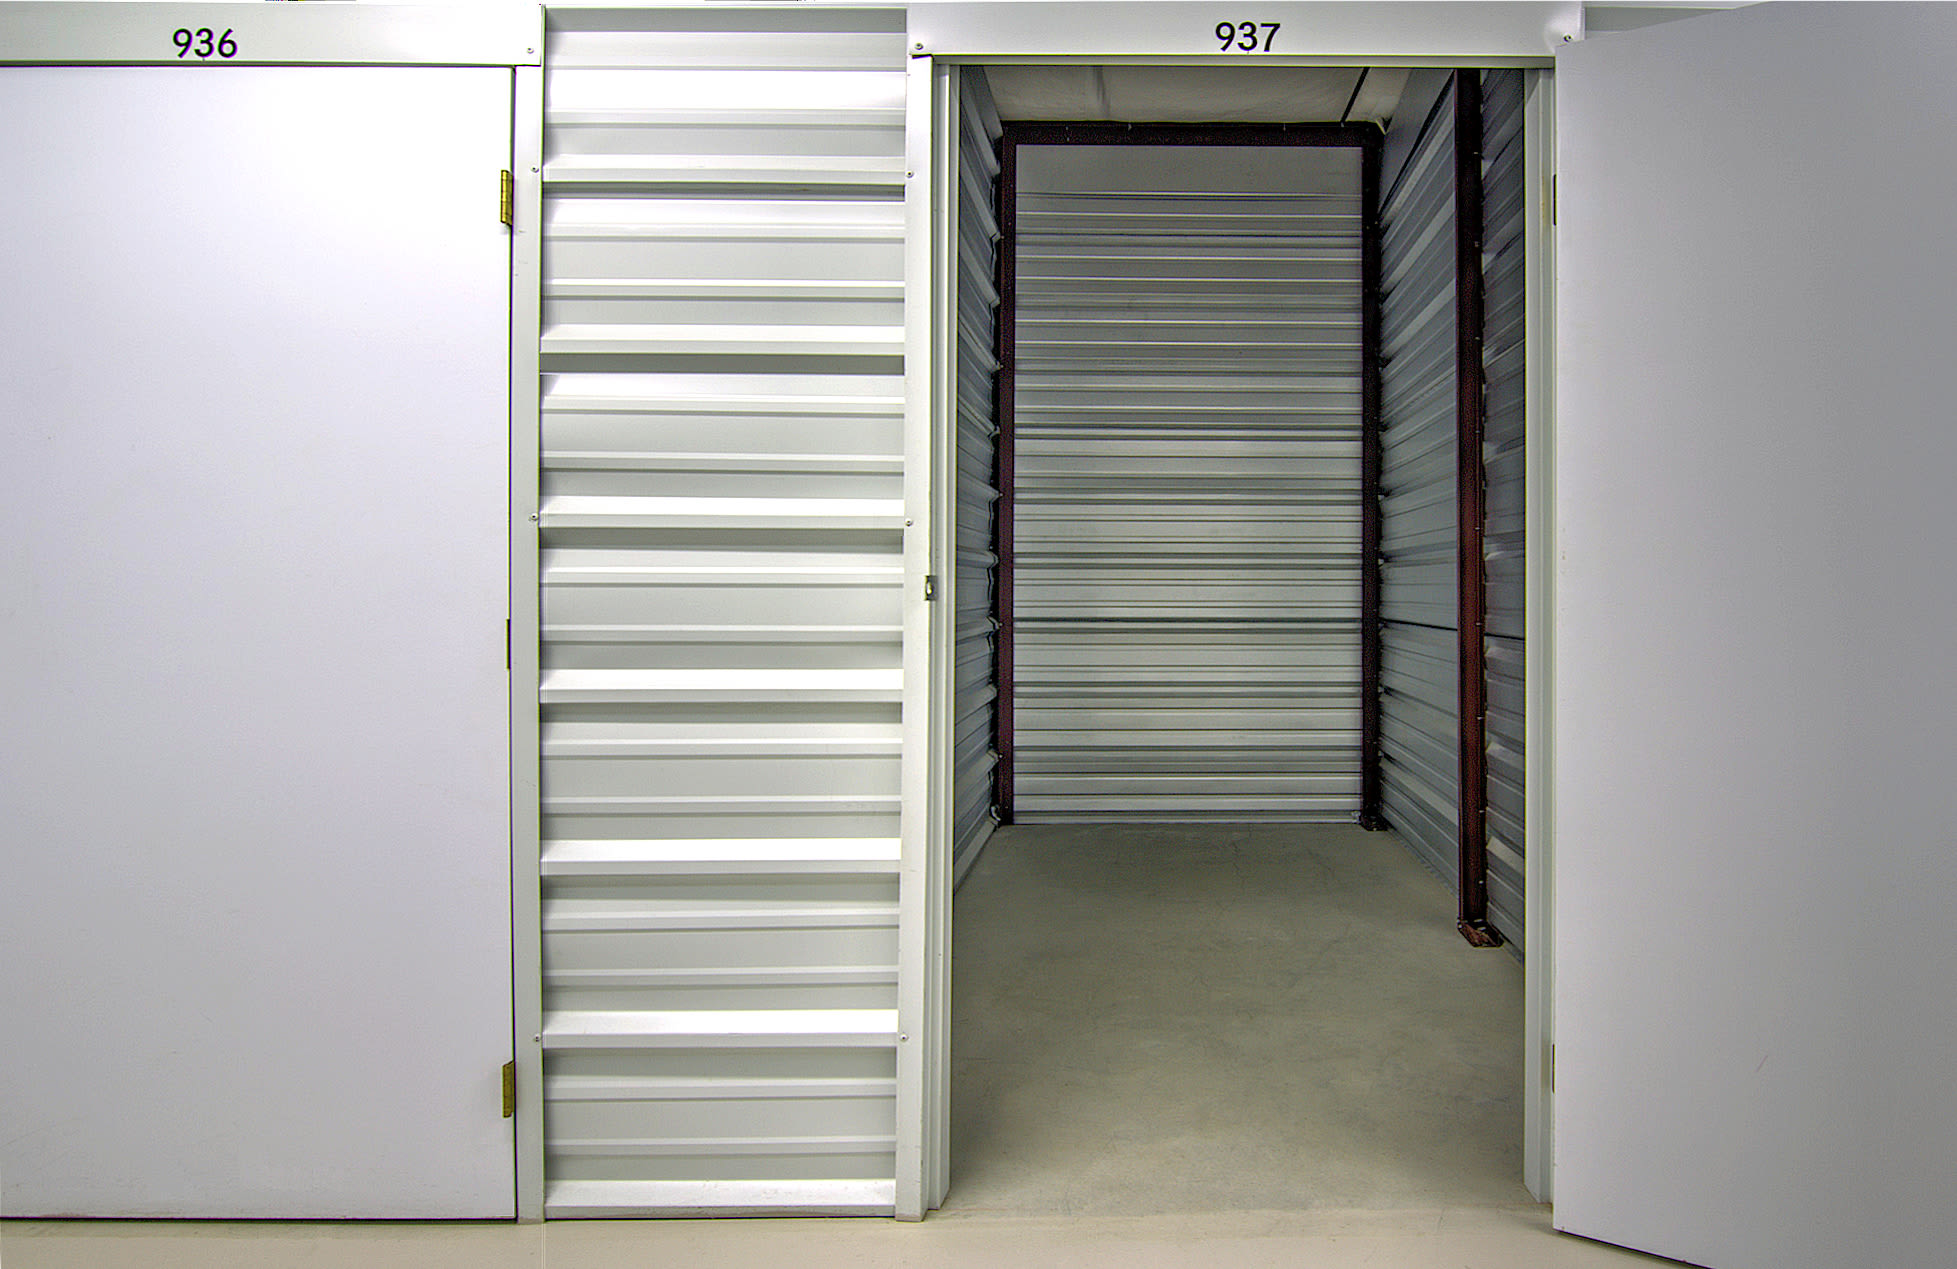 Indoor unit at Prime Storage in Shallotte, North Carolina